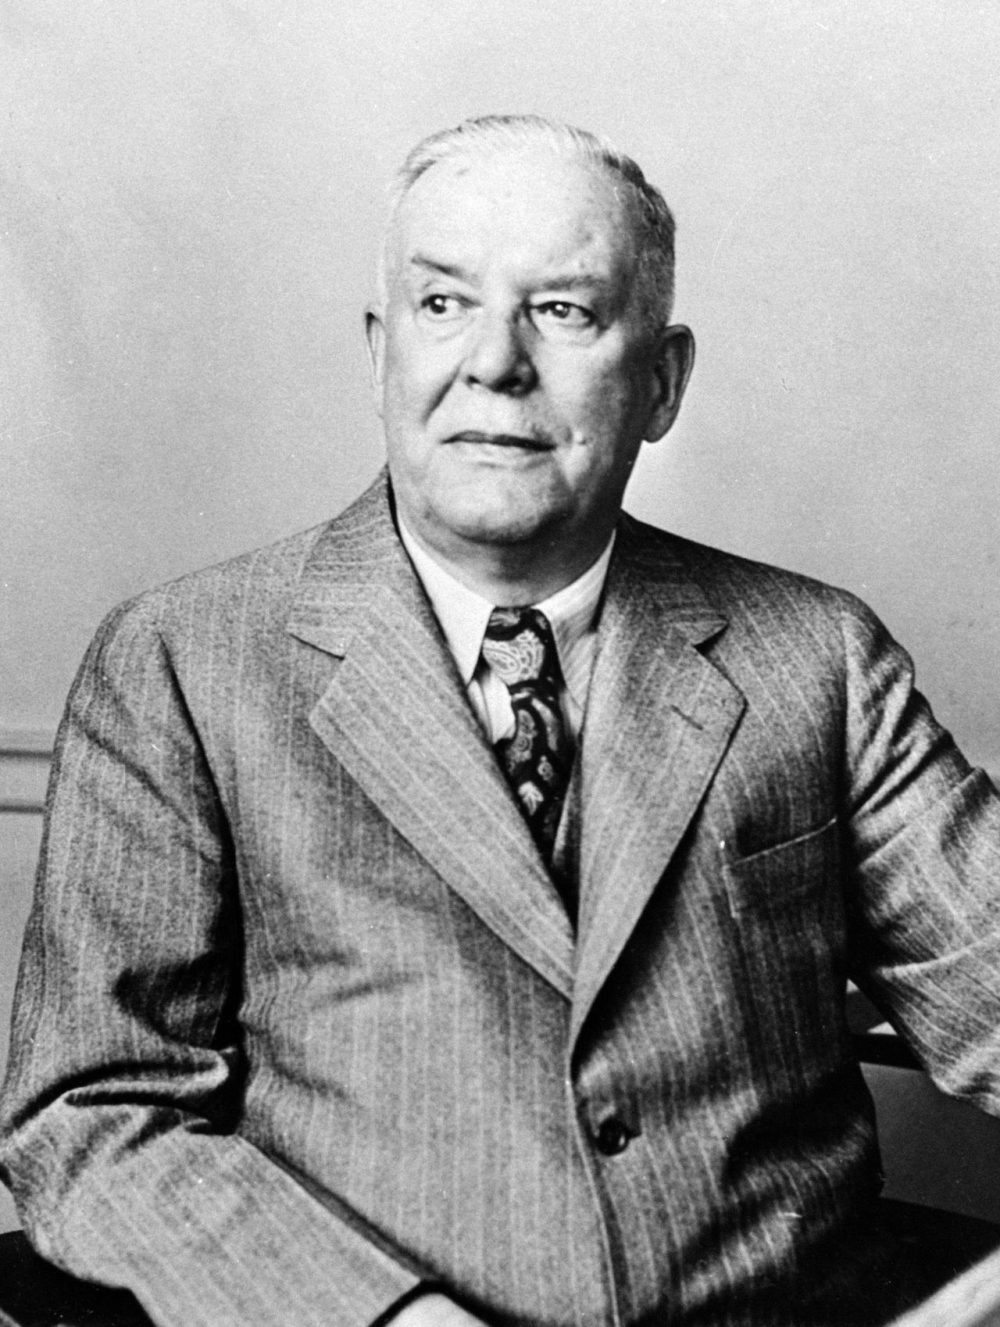 Poetry and National book award winner, Wallace Stevens. March 1951. (AP Photo)